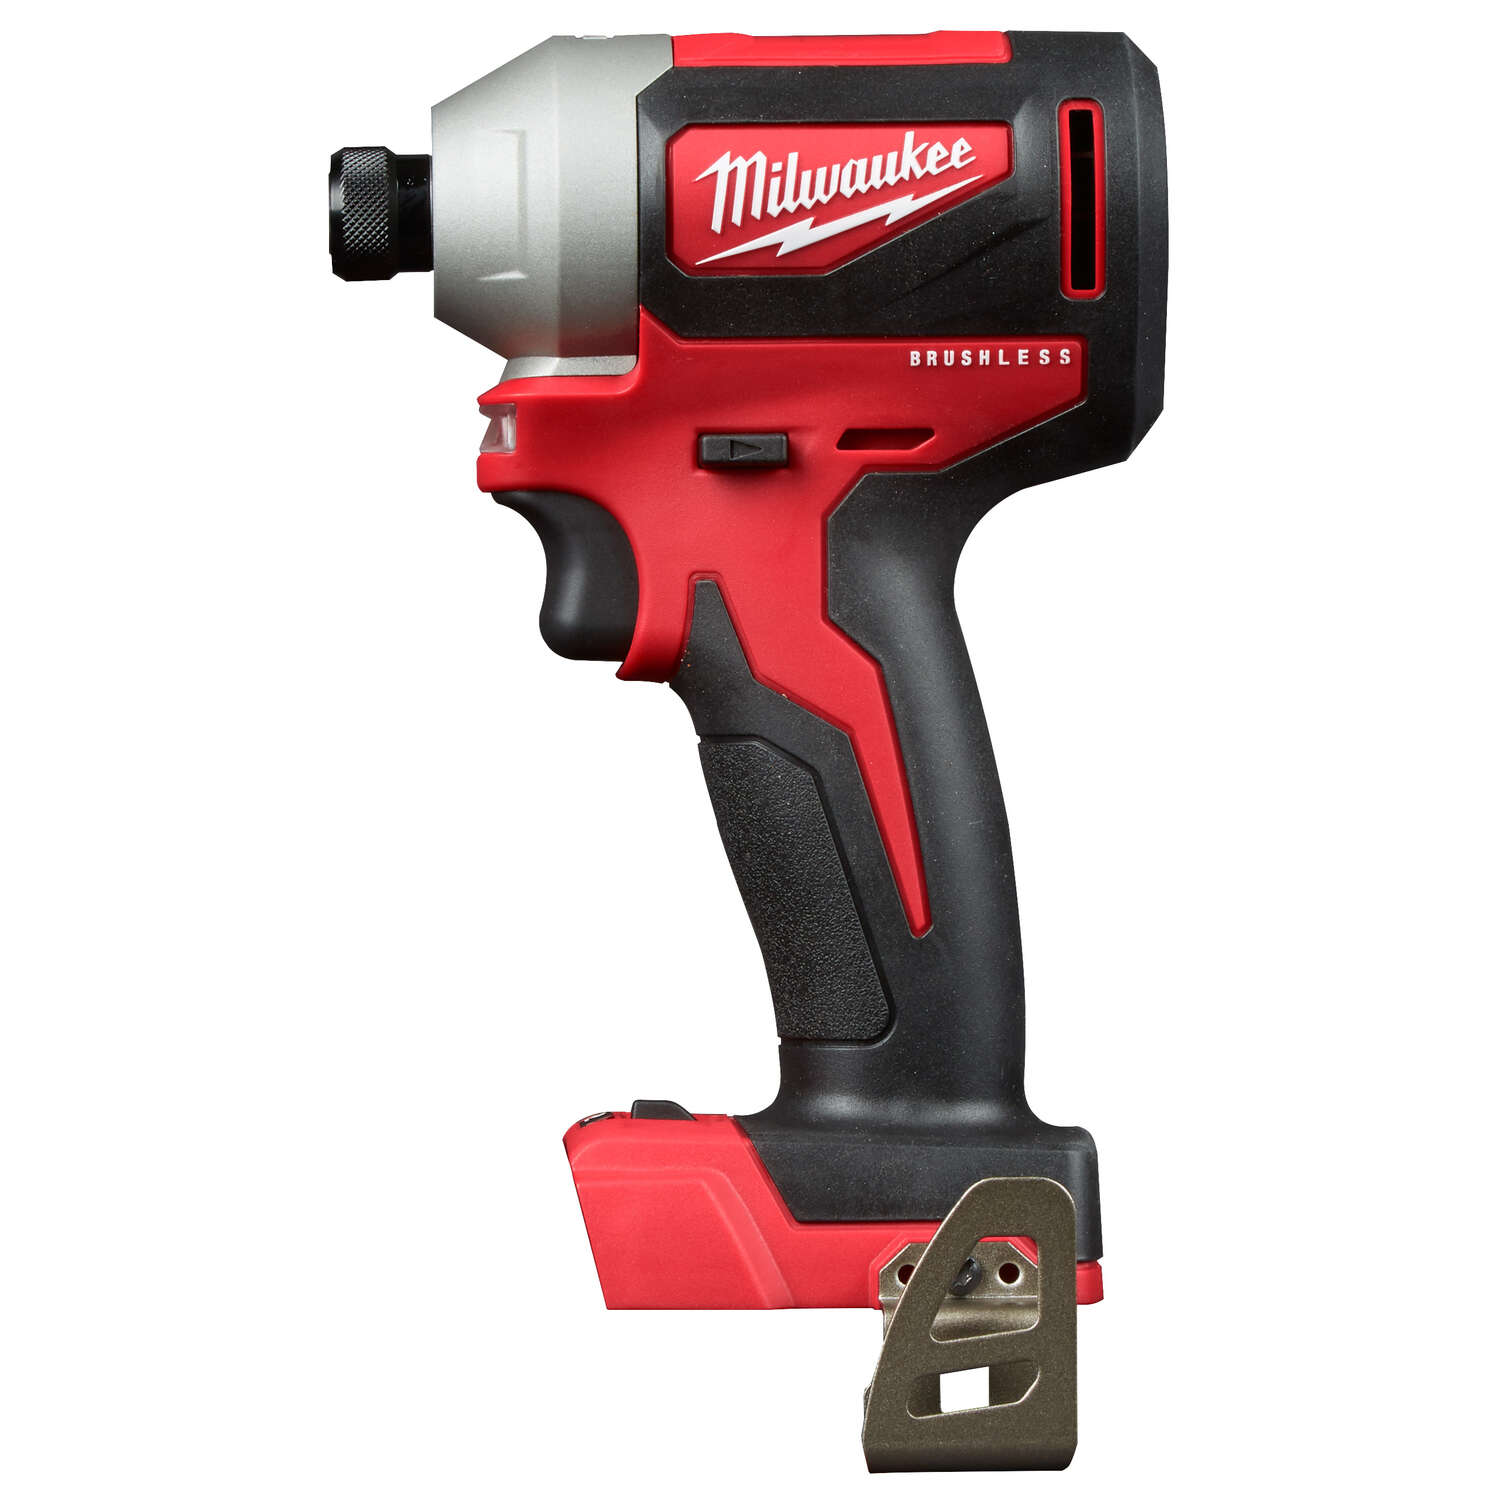 Milwaukee  M18  18 volt 1/4 in. Cordless  Brushless  Impact Driver  Tool Only